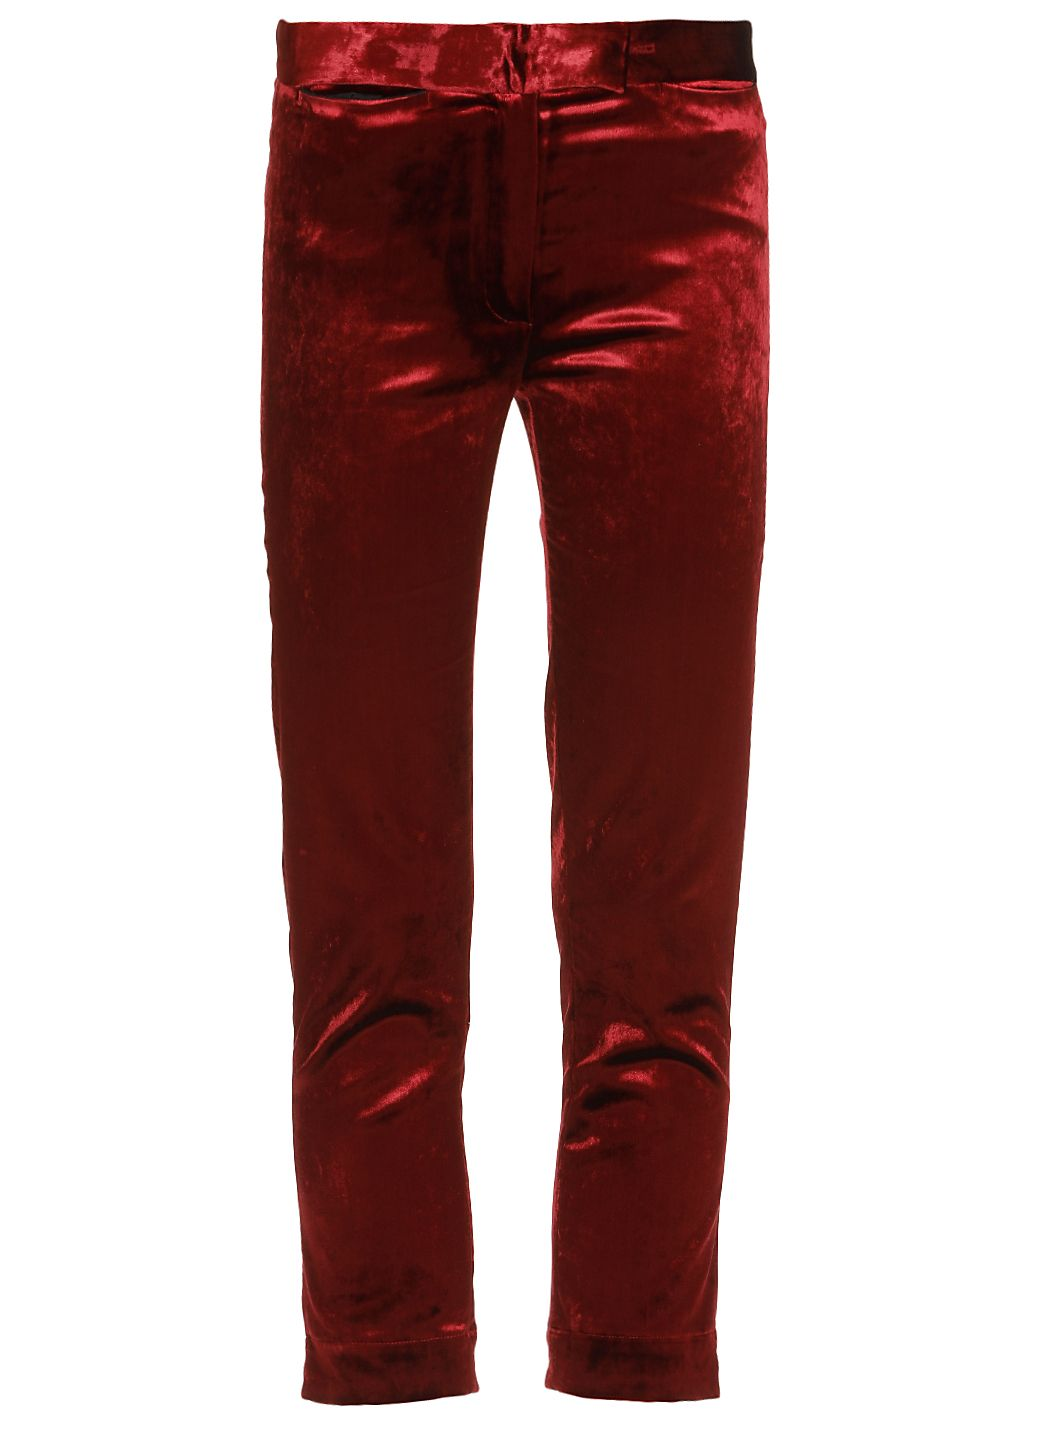 Trousers calcio burgundy